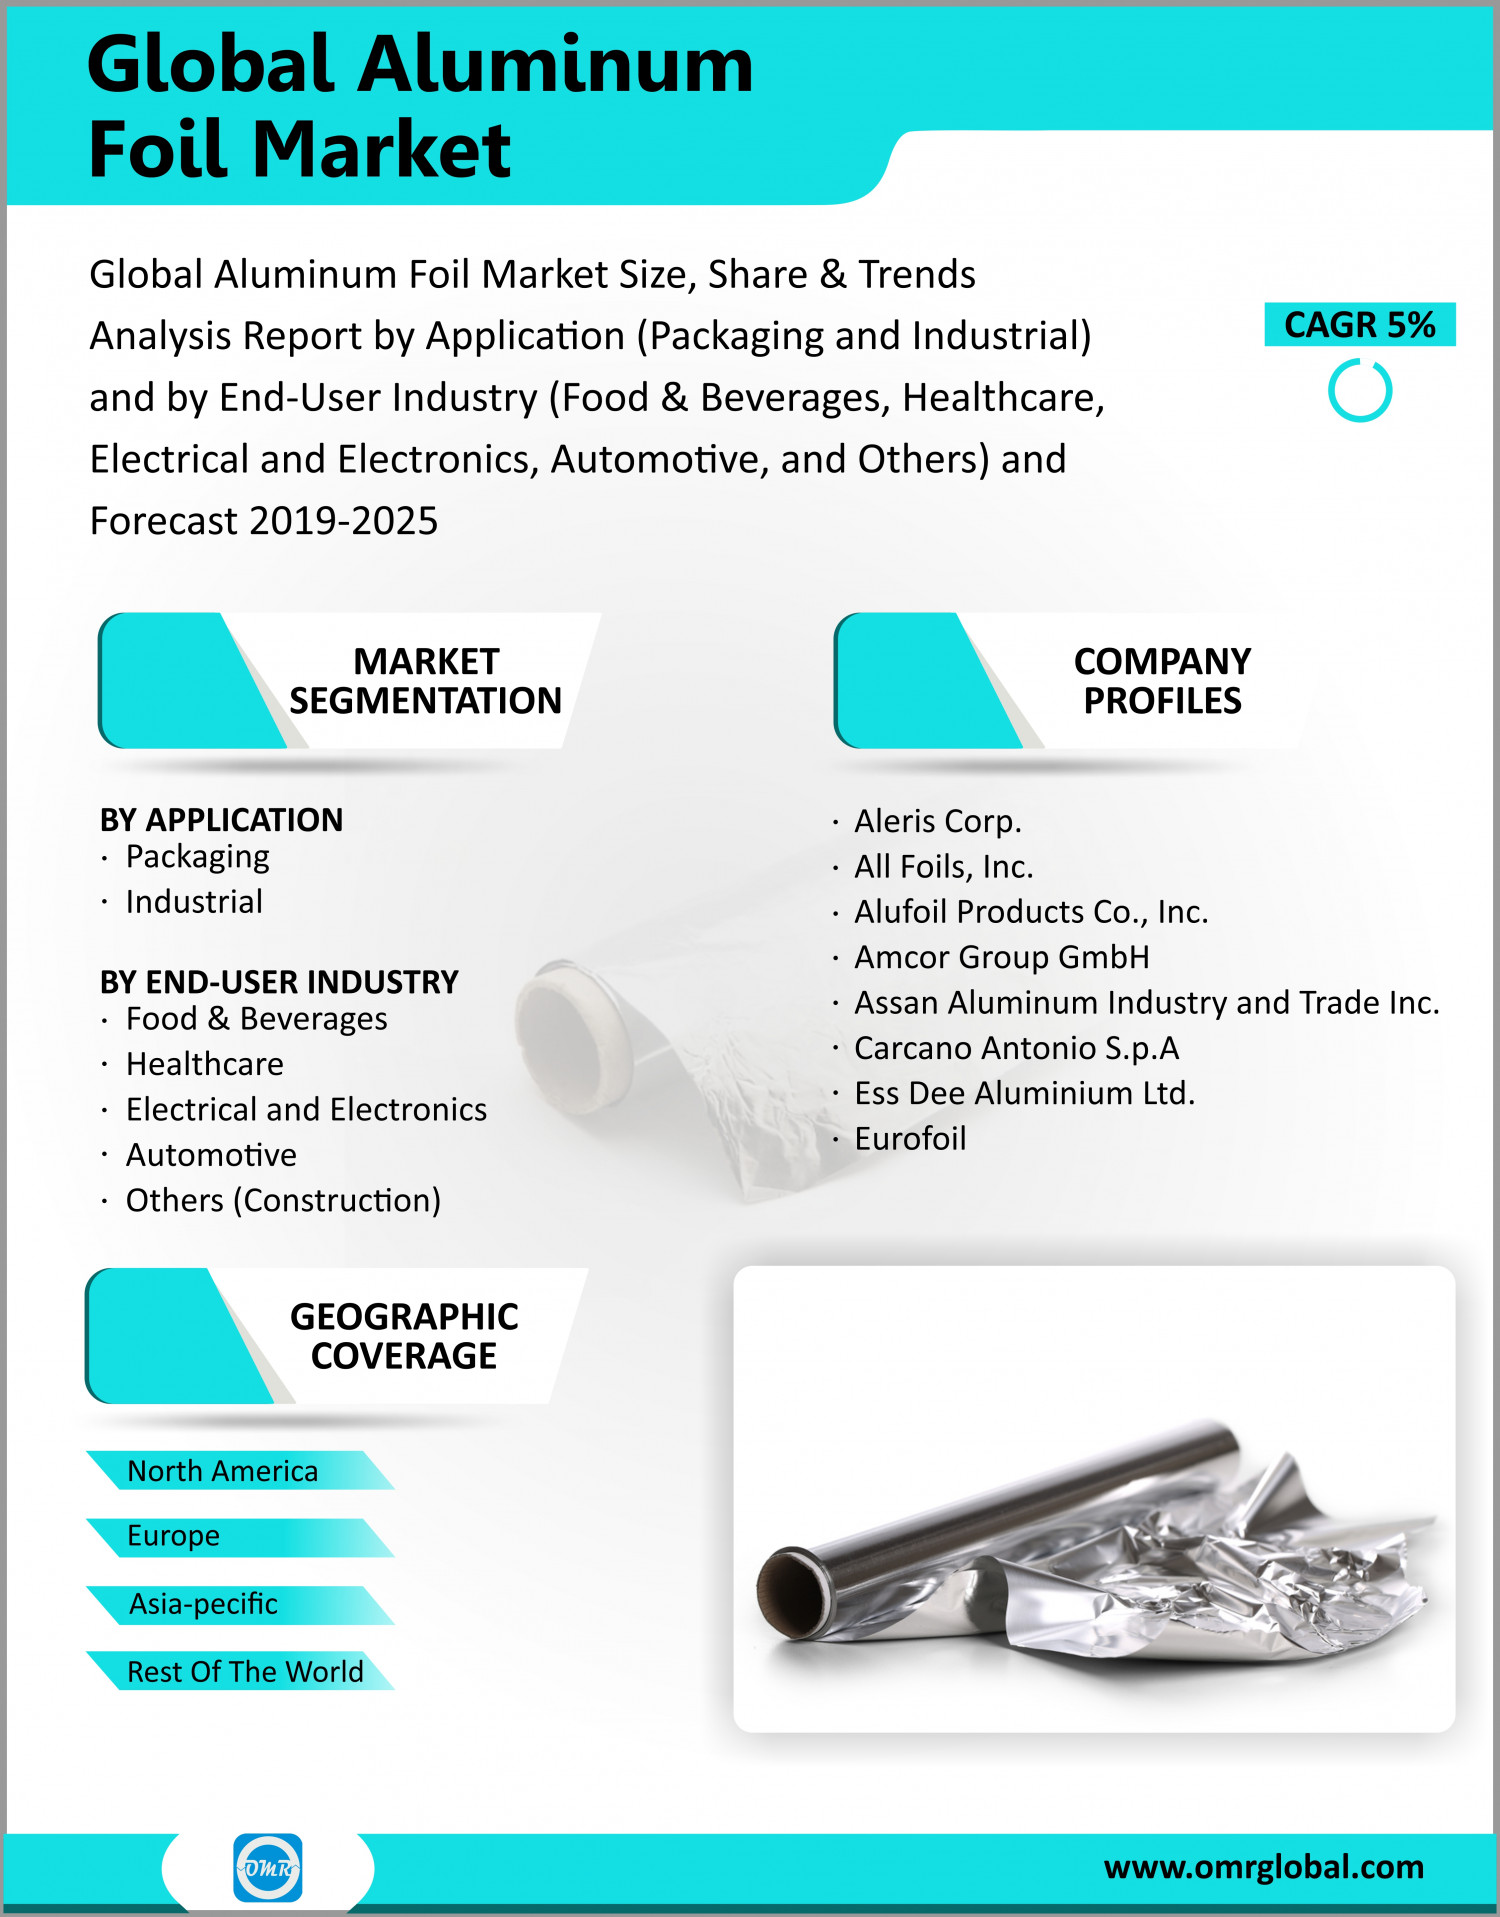 Aluminum Foil Market, Industry Analysis, Trends, Growth, Size, Share, Forecast 2019 to 2025 Infographic